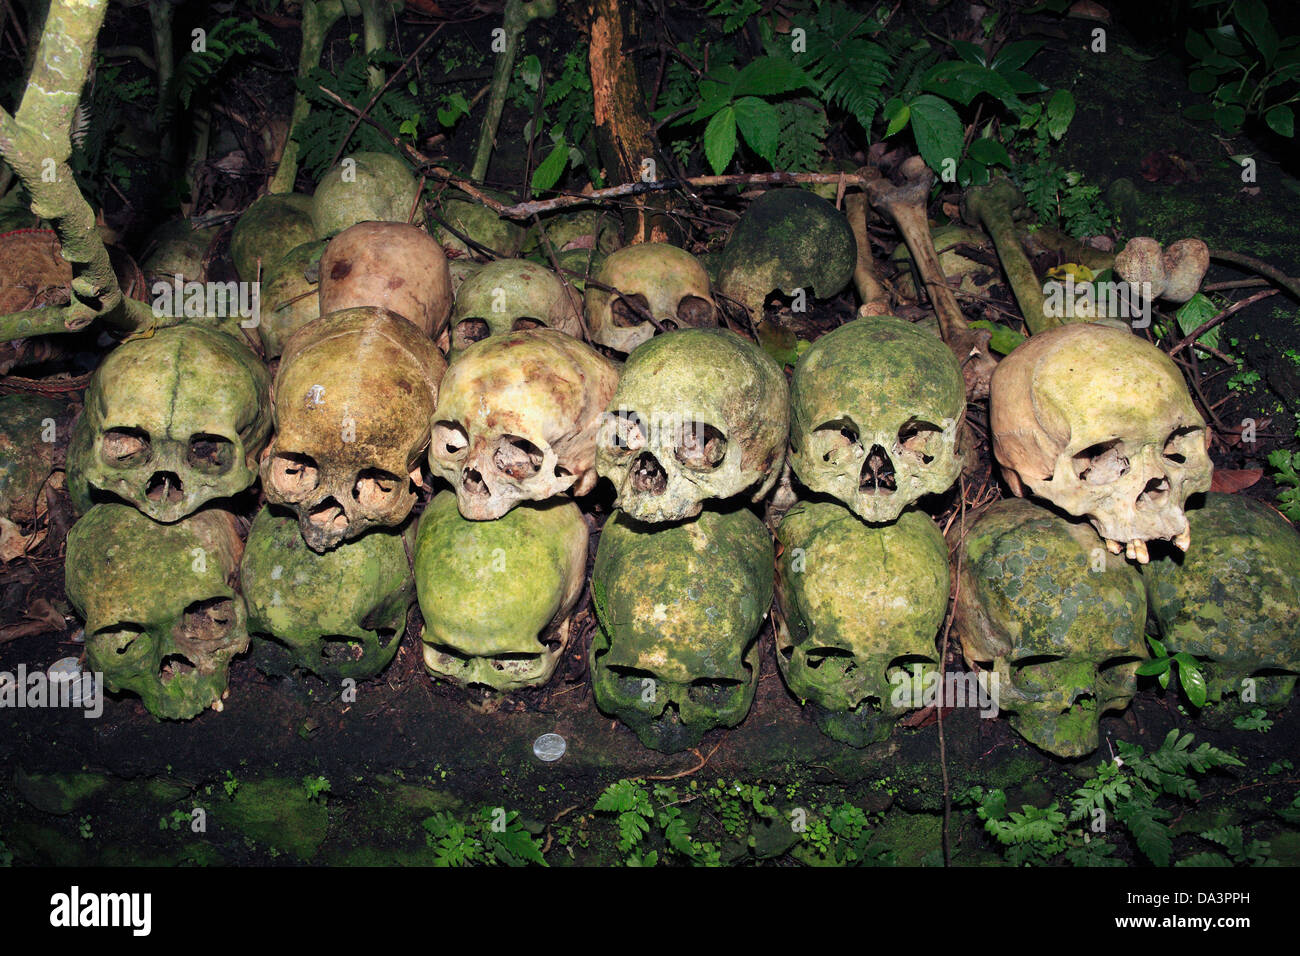 the-small-cemetery-at-the-bali-aga-village-of-trunyan-DA3PPH.jpg